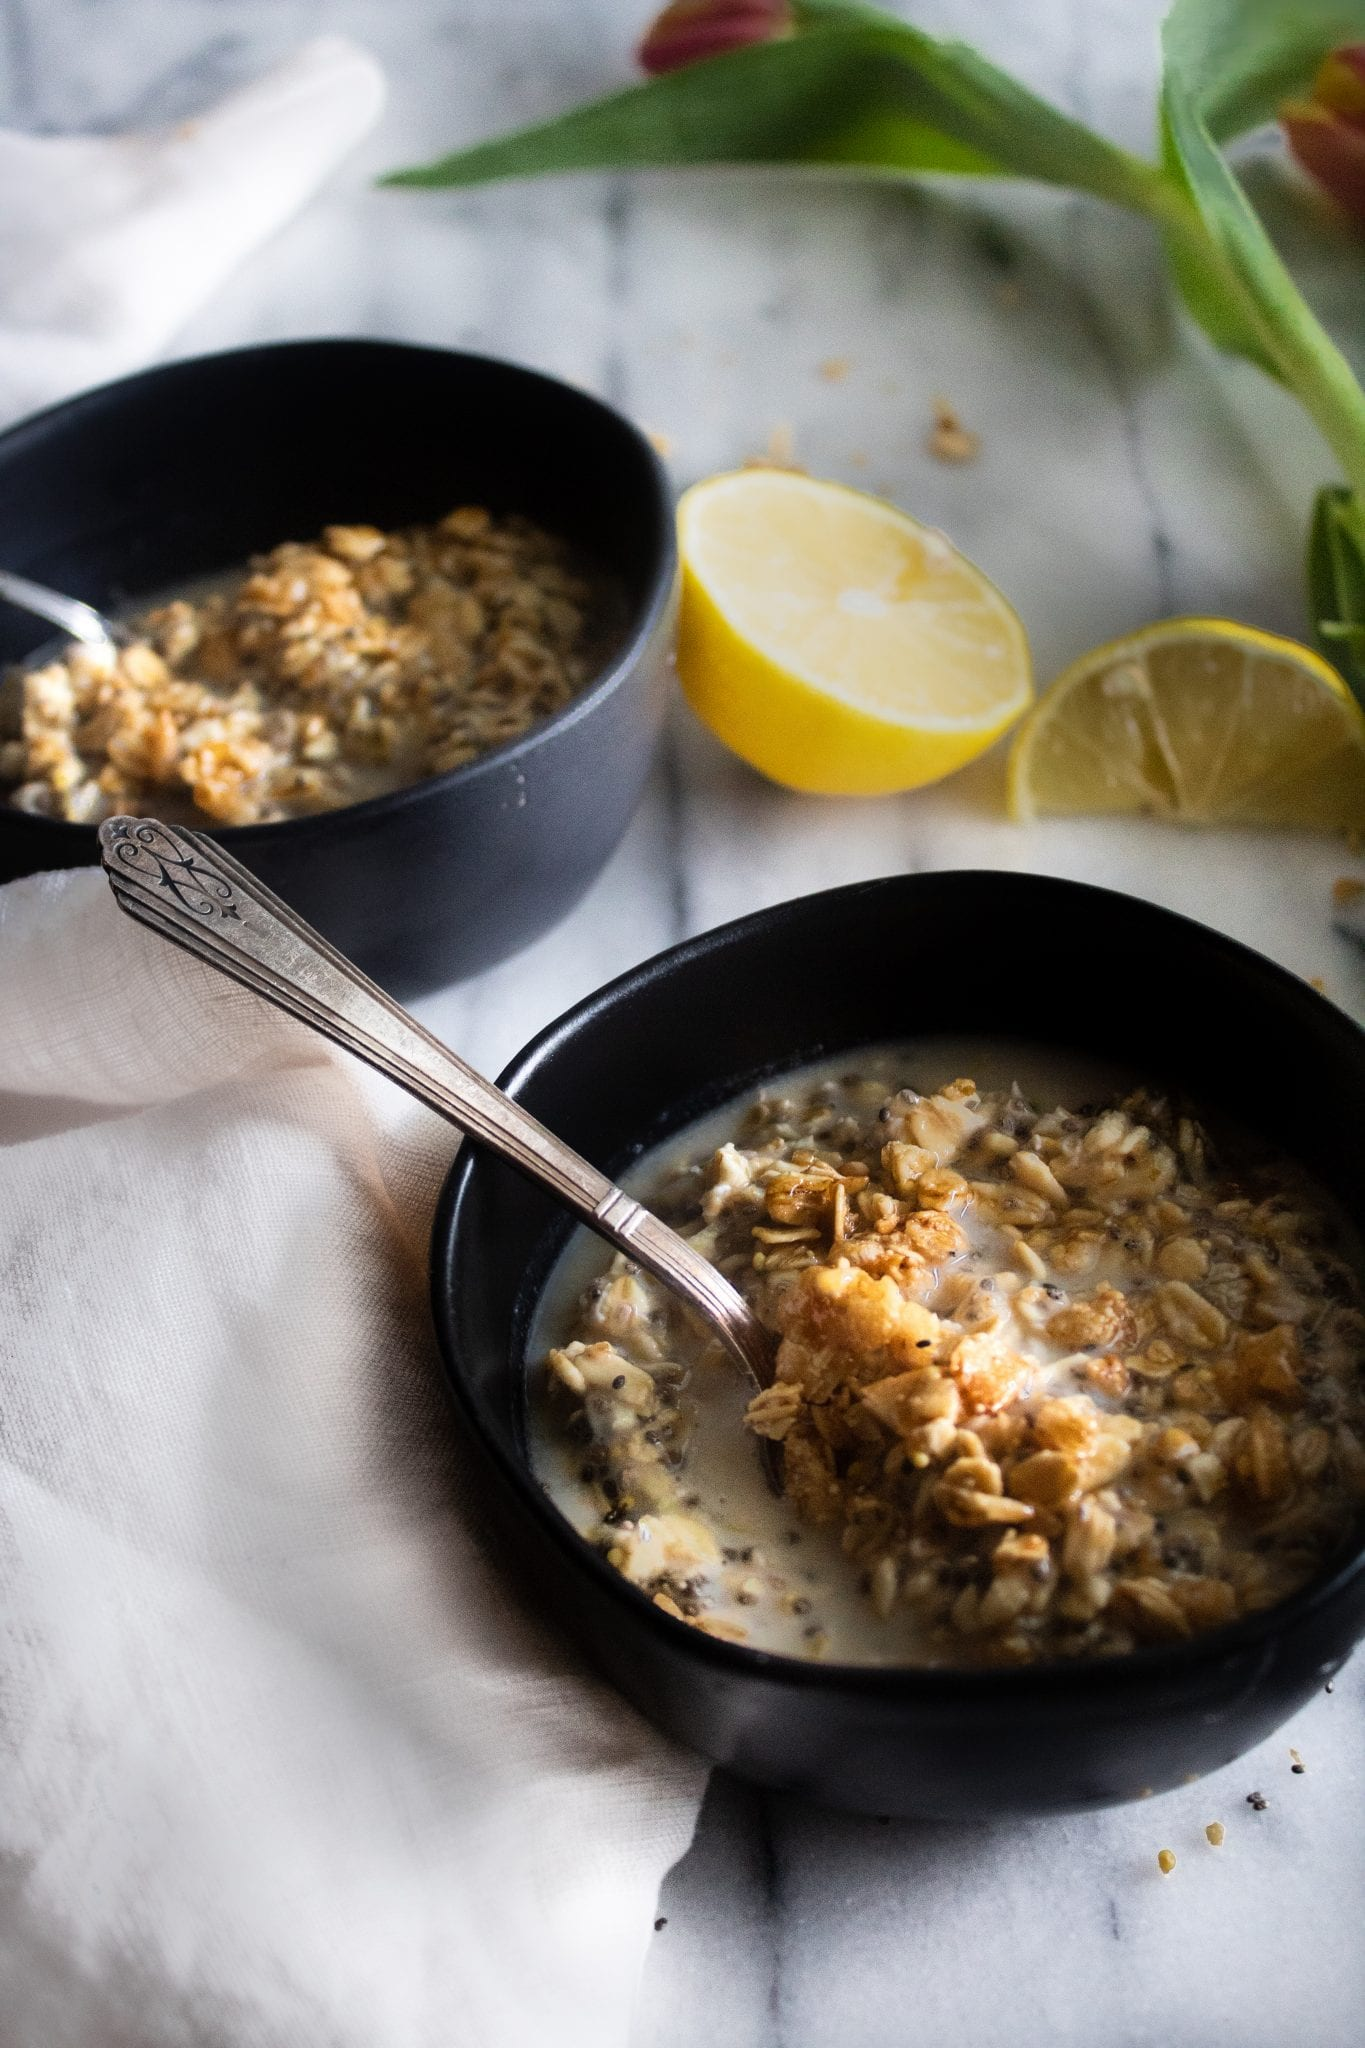 two bowls of oatmeal with lemon